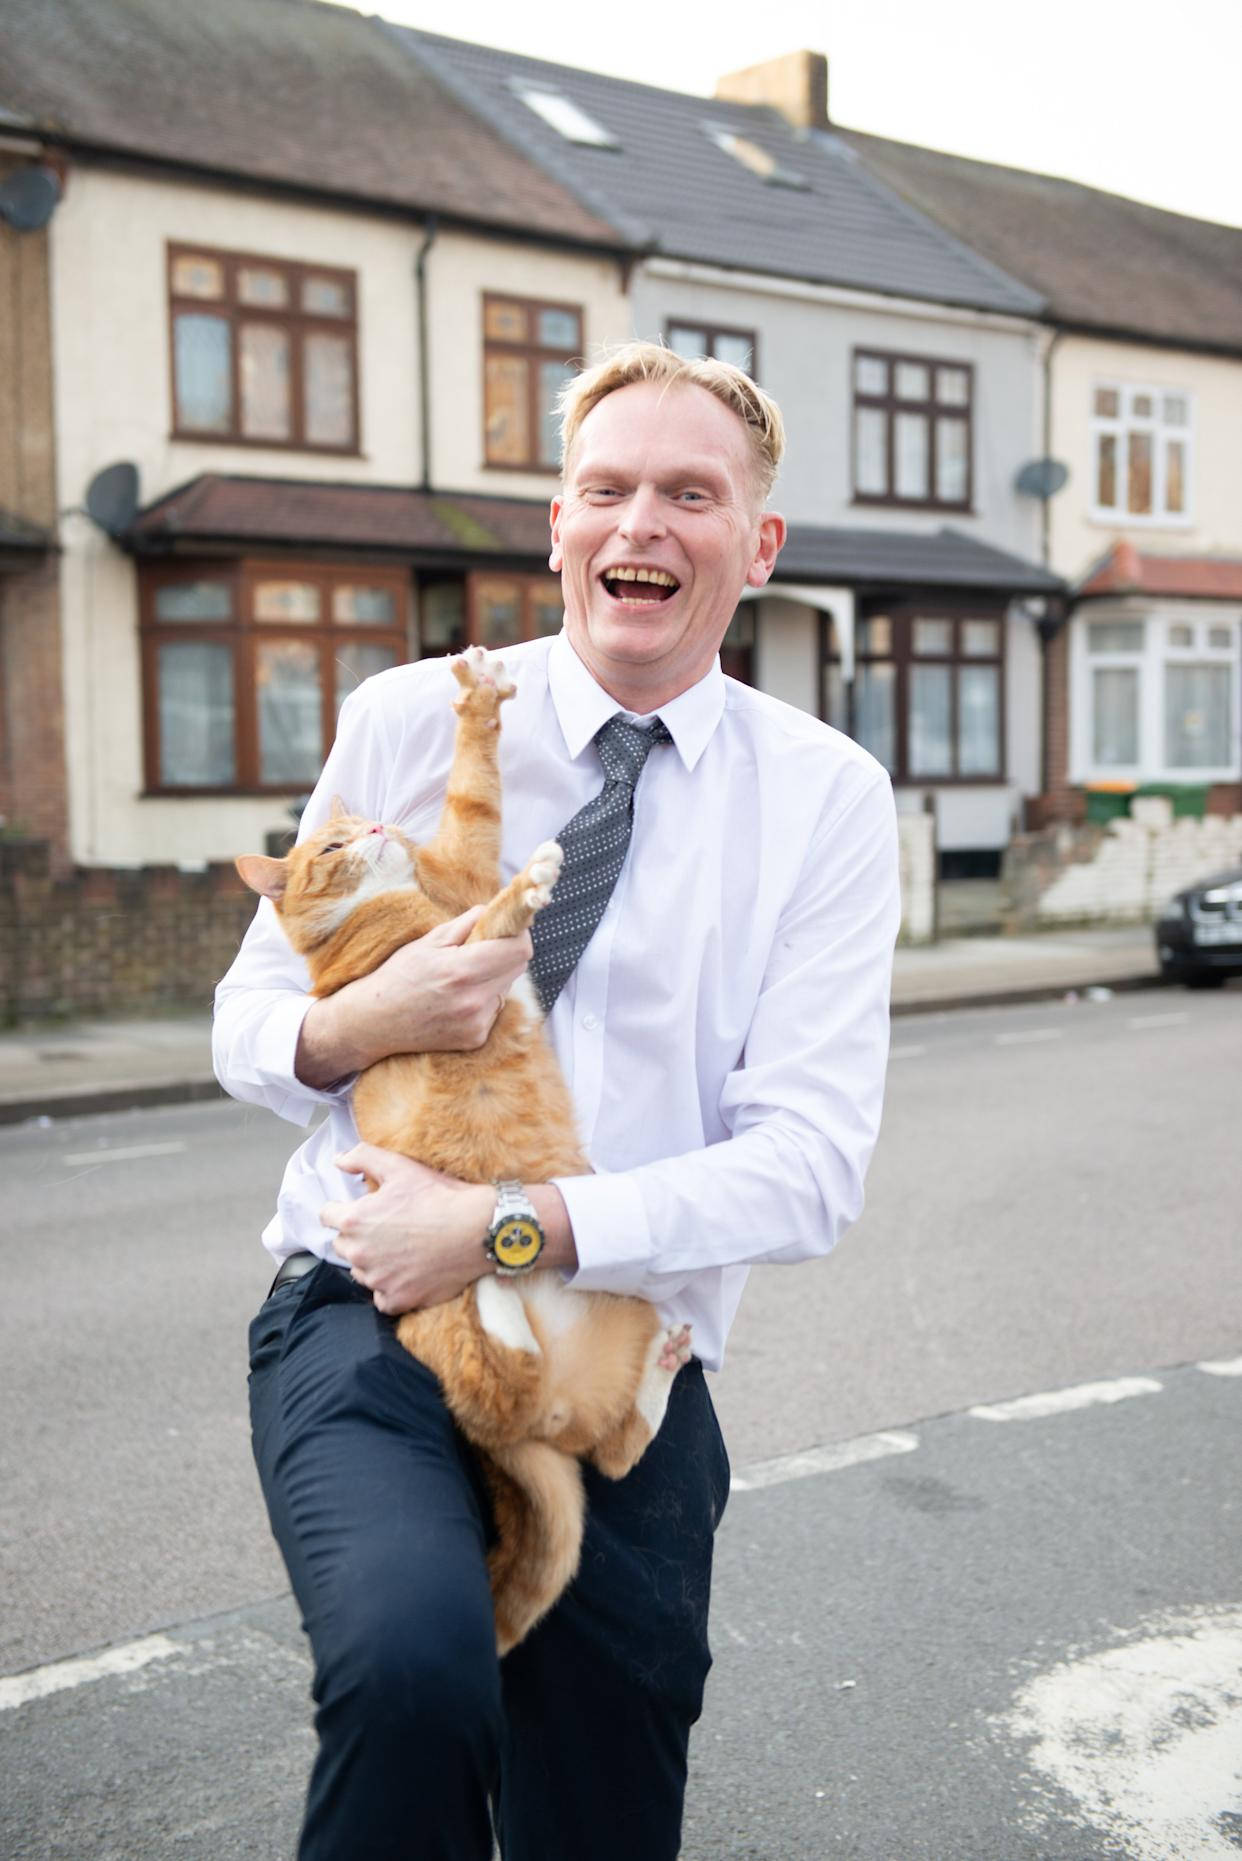 Andy Kindell, 52, bought moggy Alex a special £130 collar with a GPS tracking chip so he could monitor the cat's location via an app on his phone.